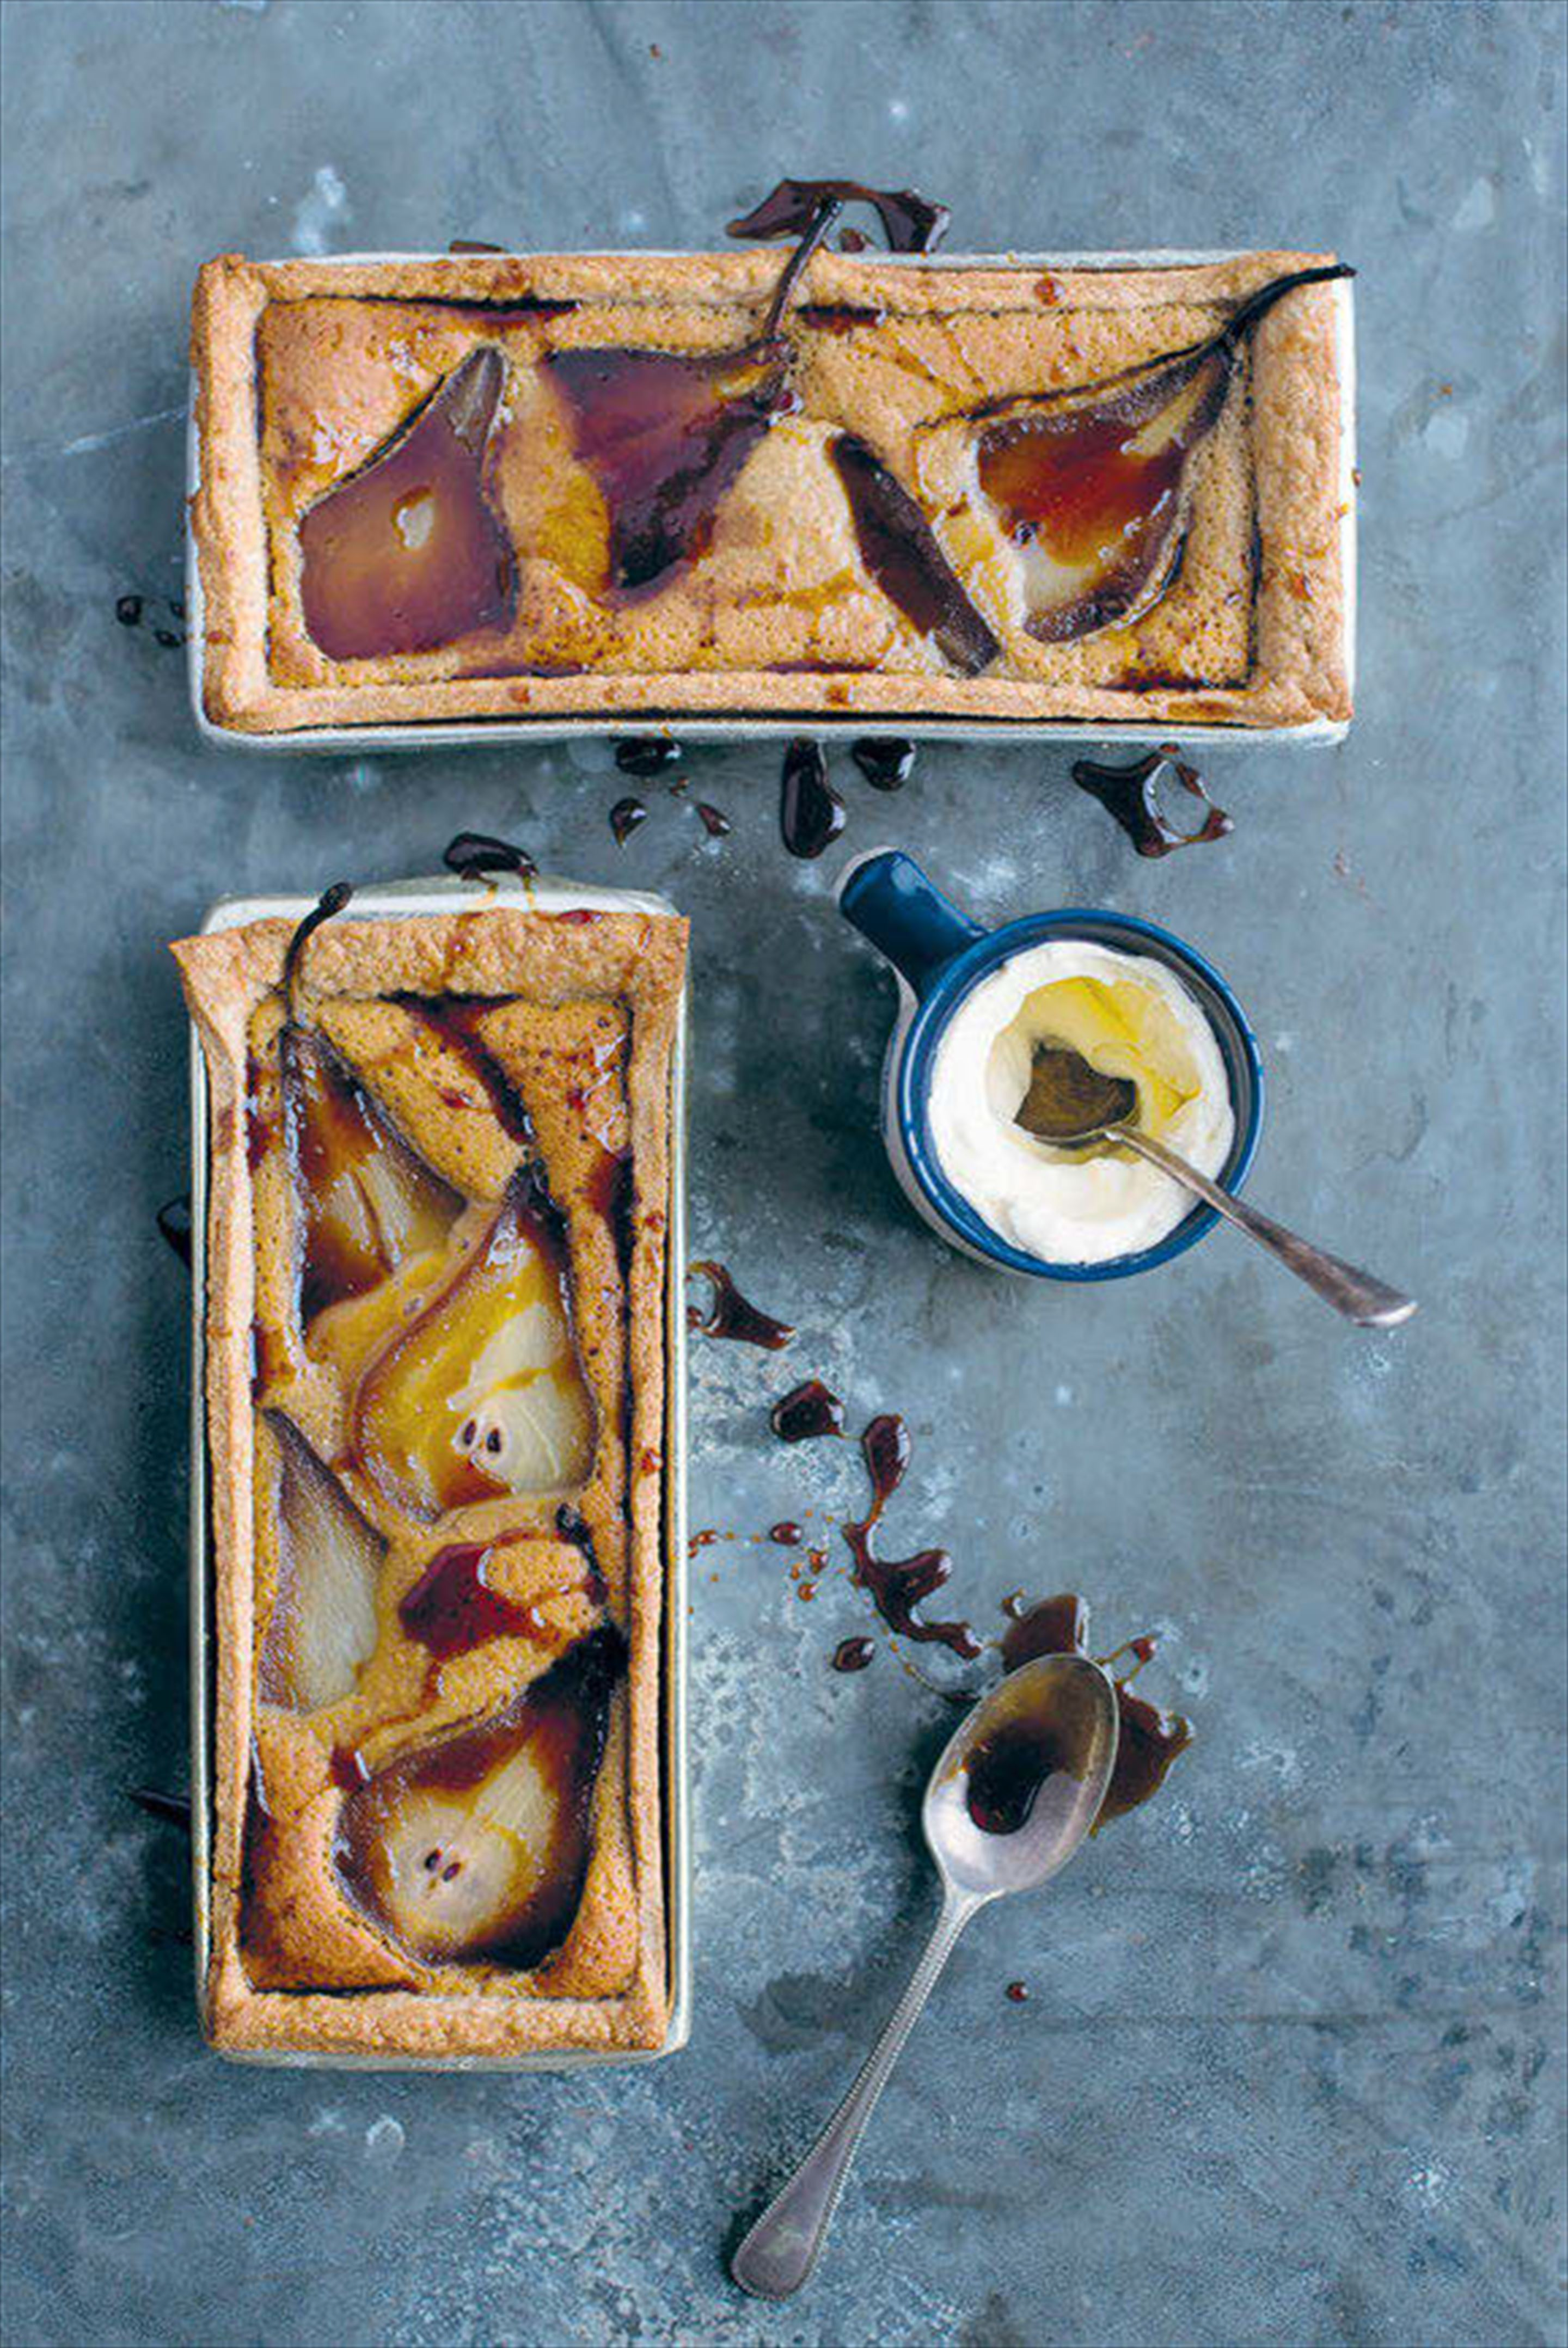 Pear, maple syrup and brown butter pies with cinnamon spelt crust